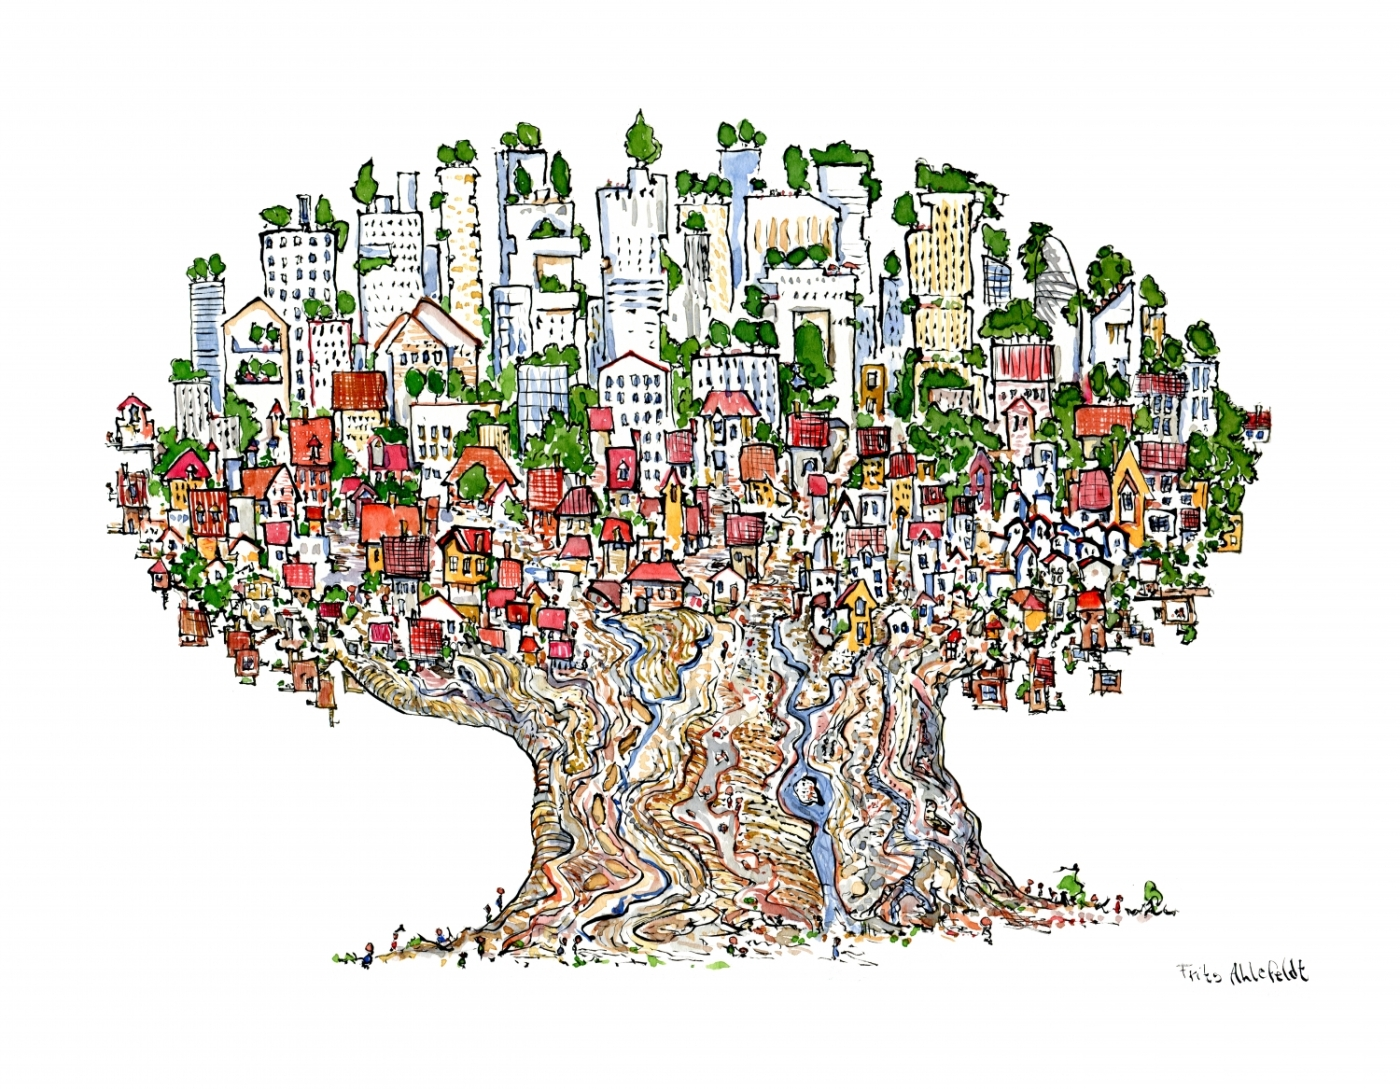 Drawing of a city in a tree